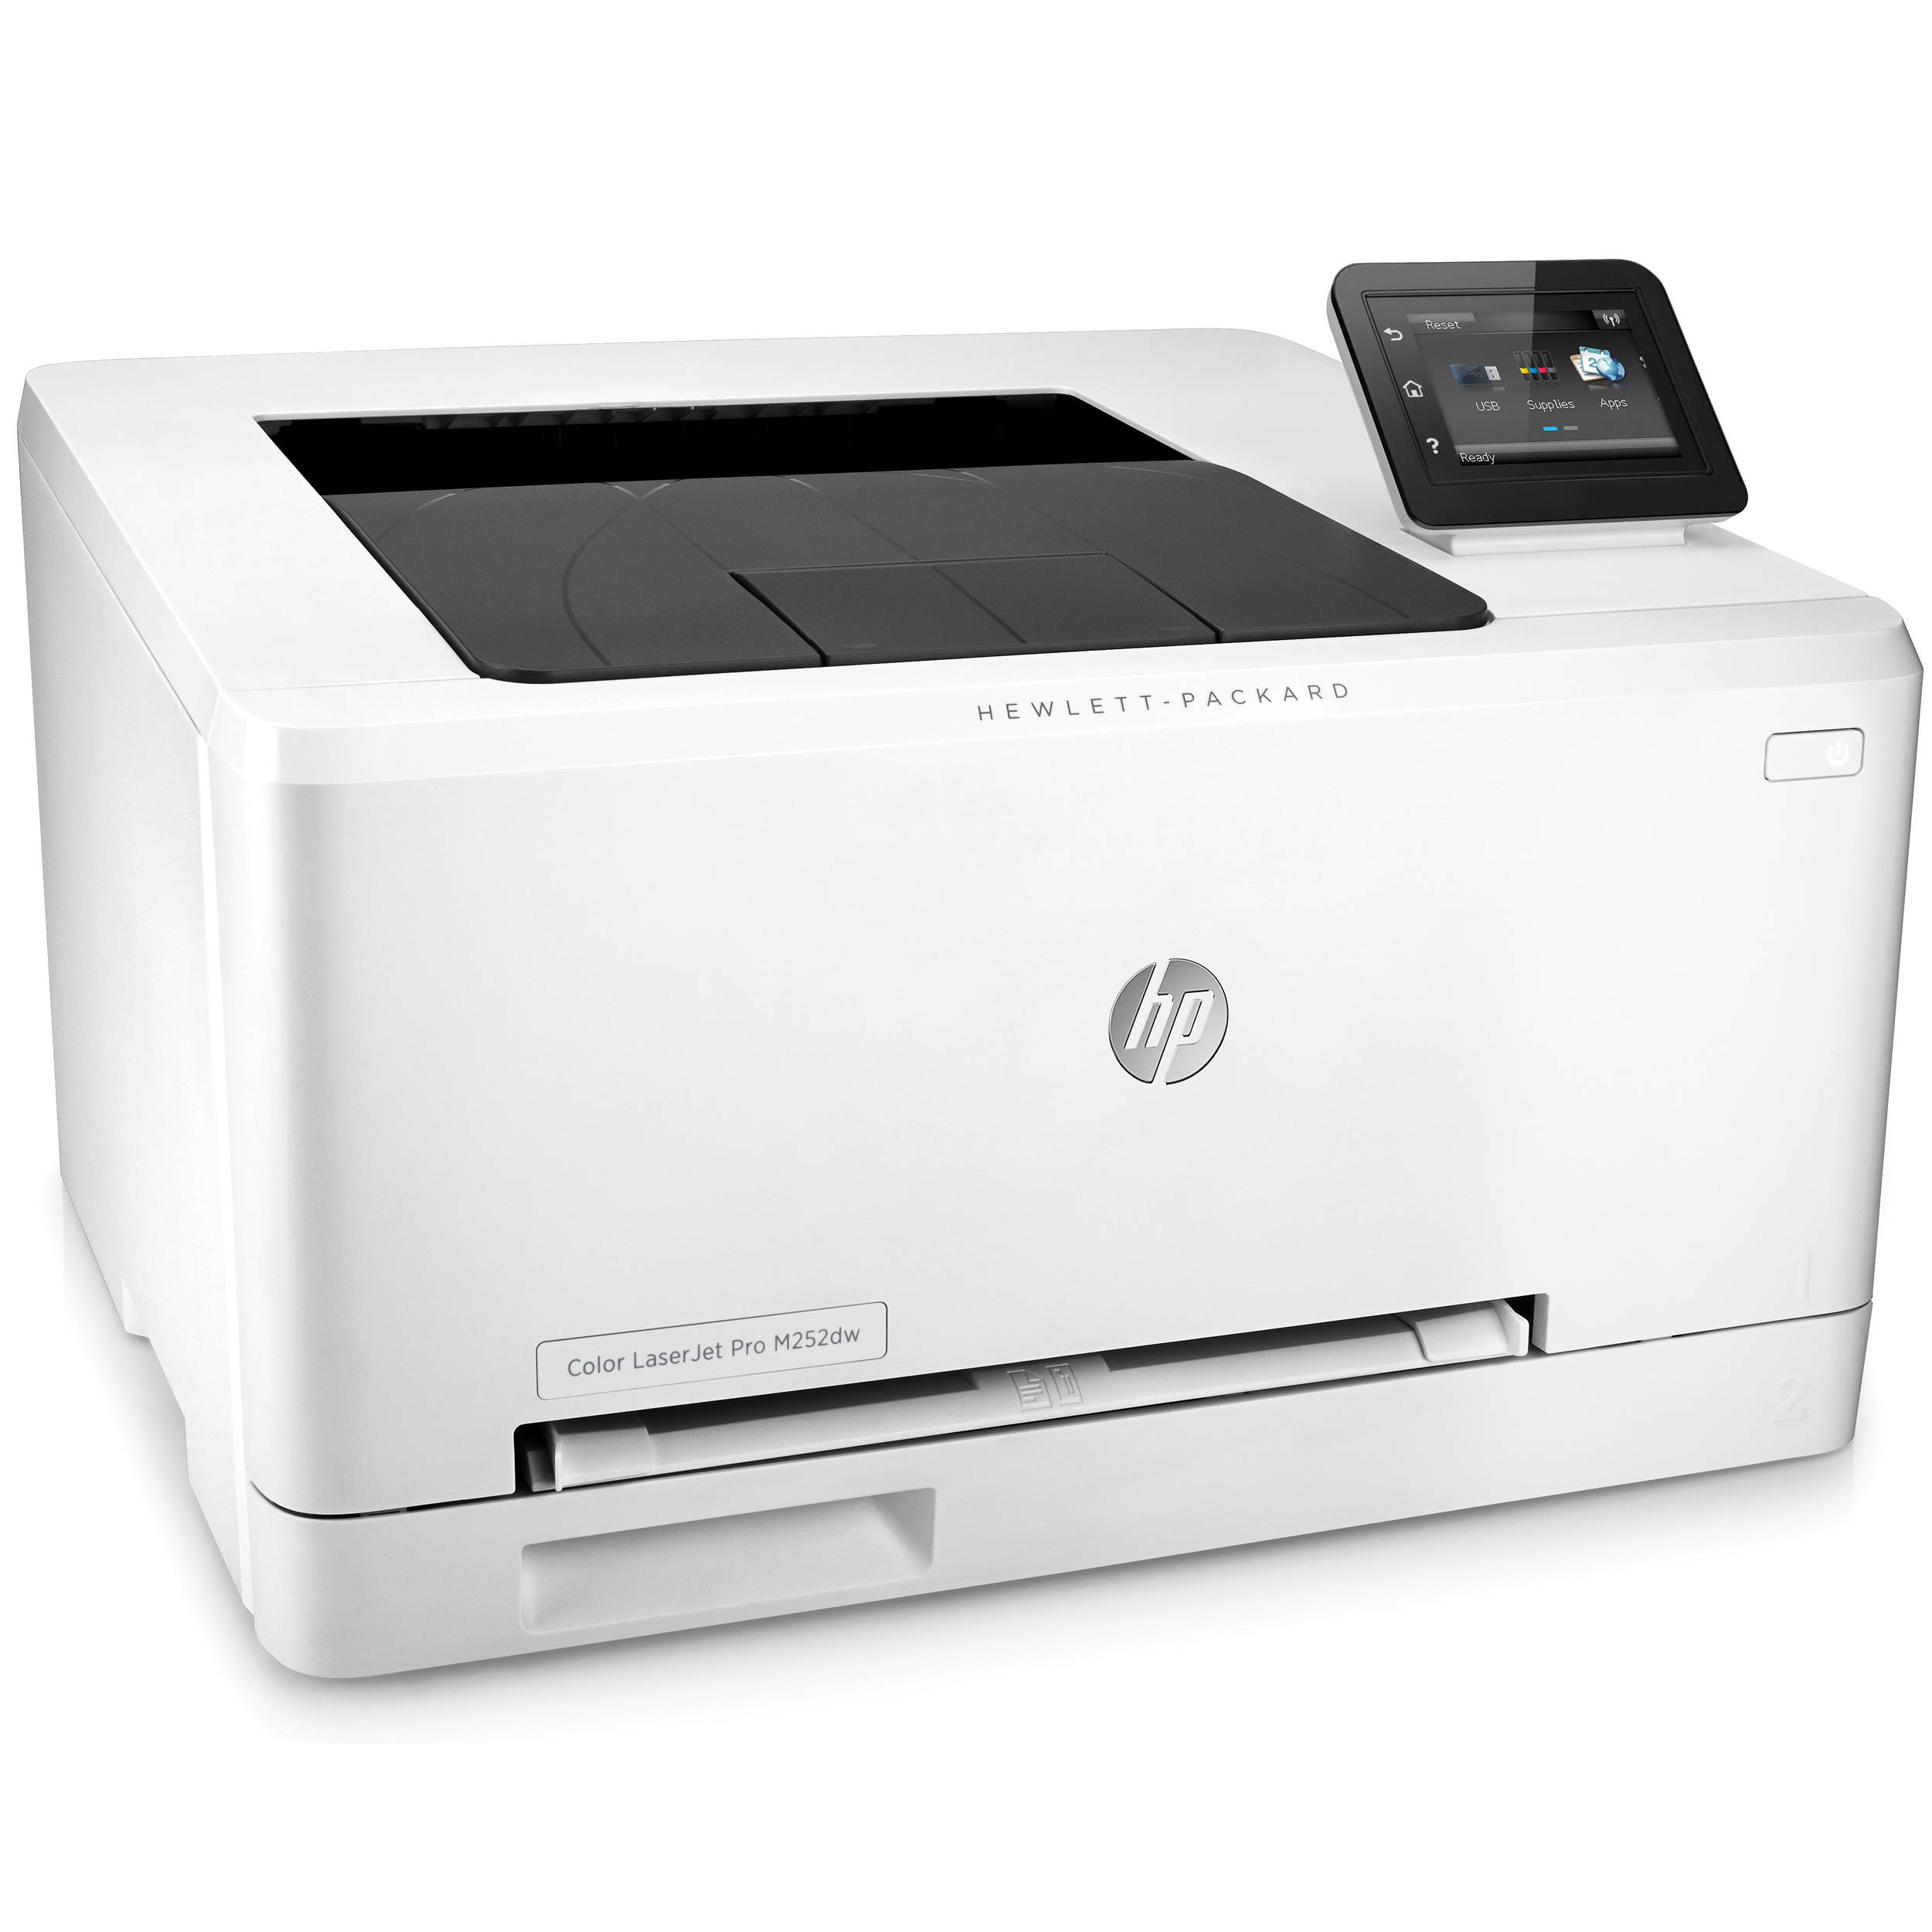 hp laserjet pro m252dw color laser printer b4a22a bgj b u0026h photo